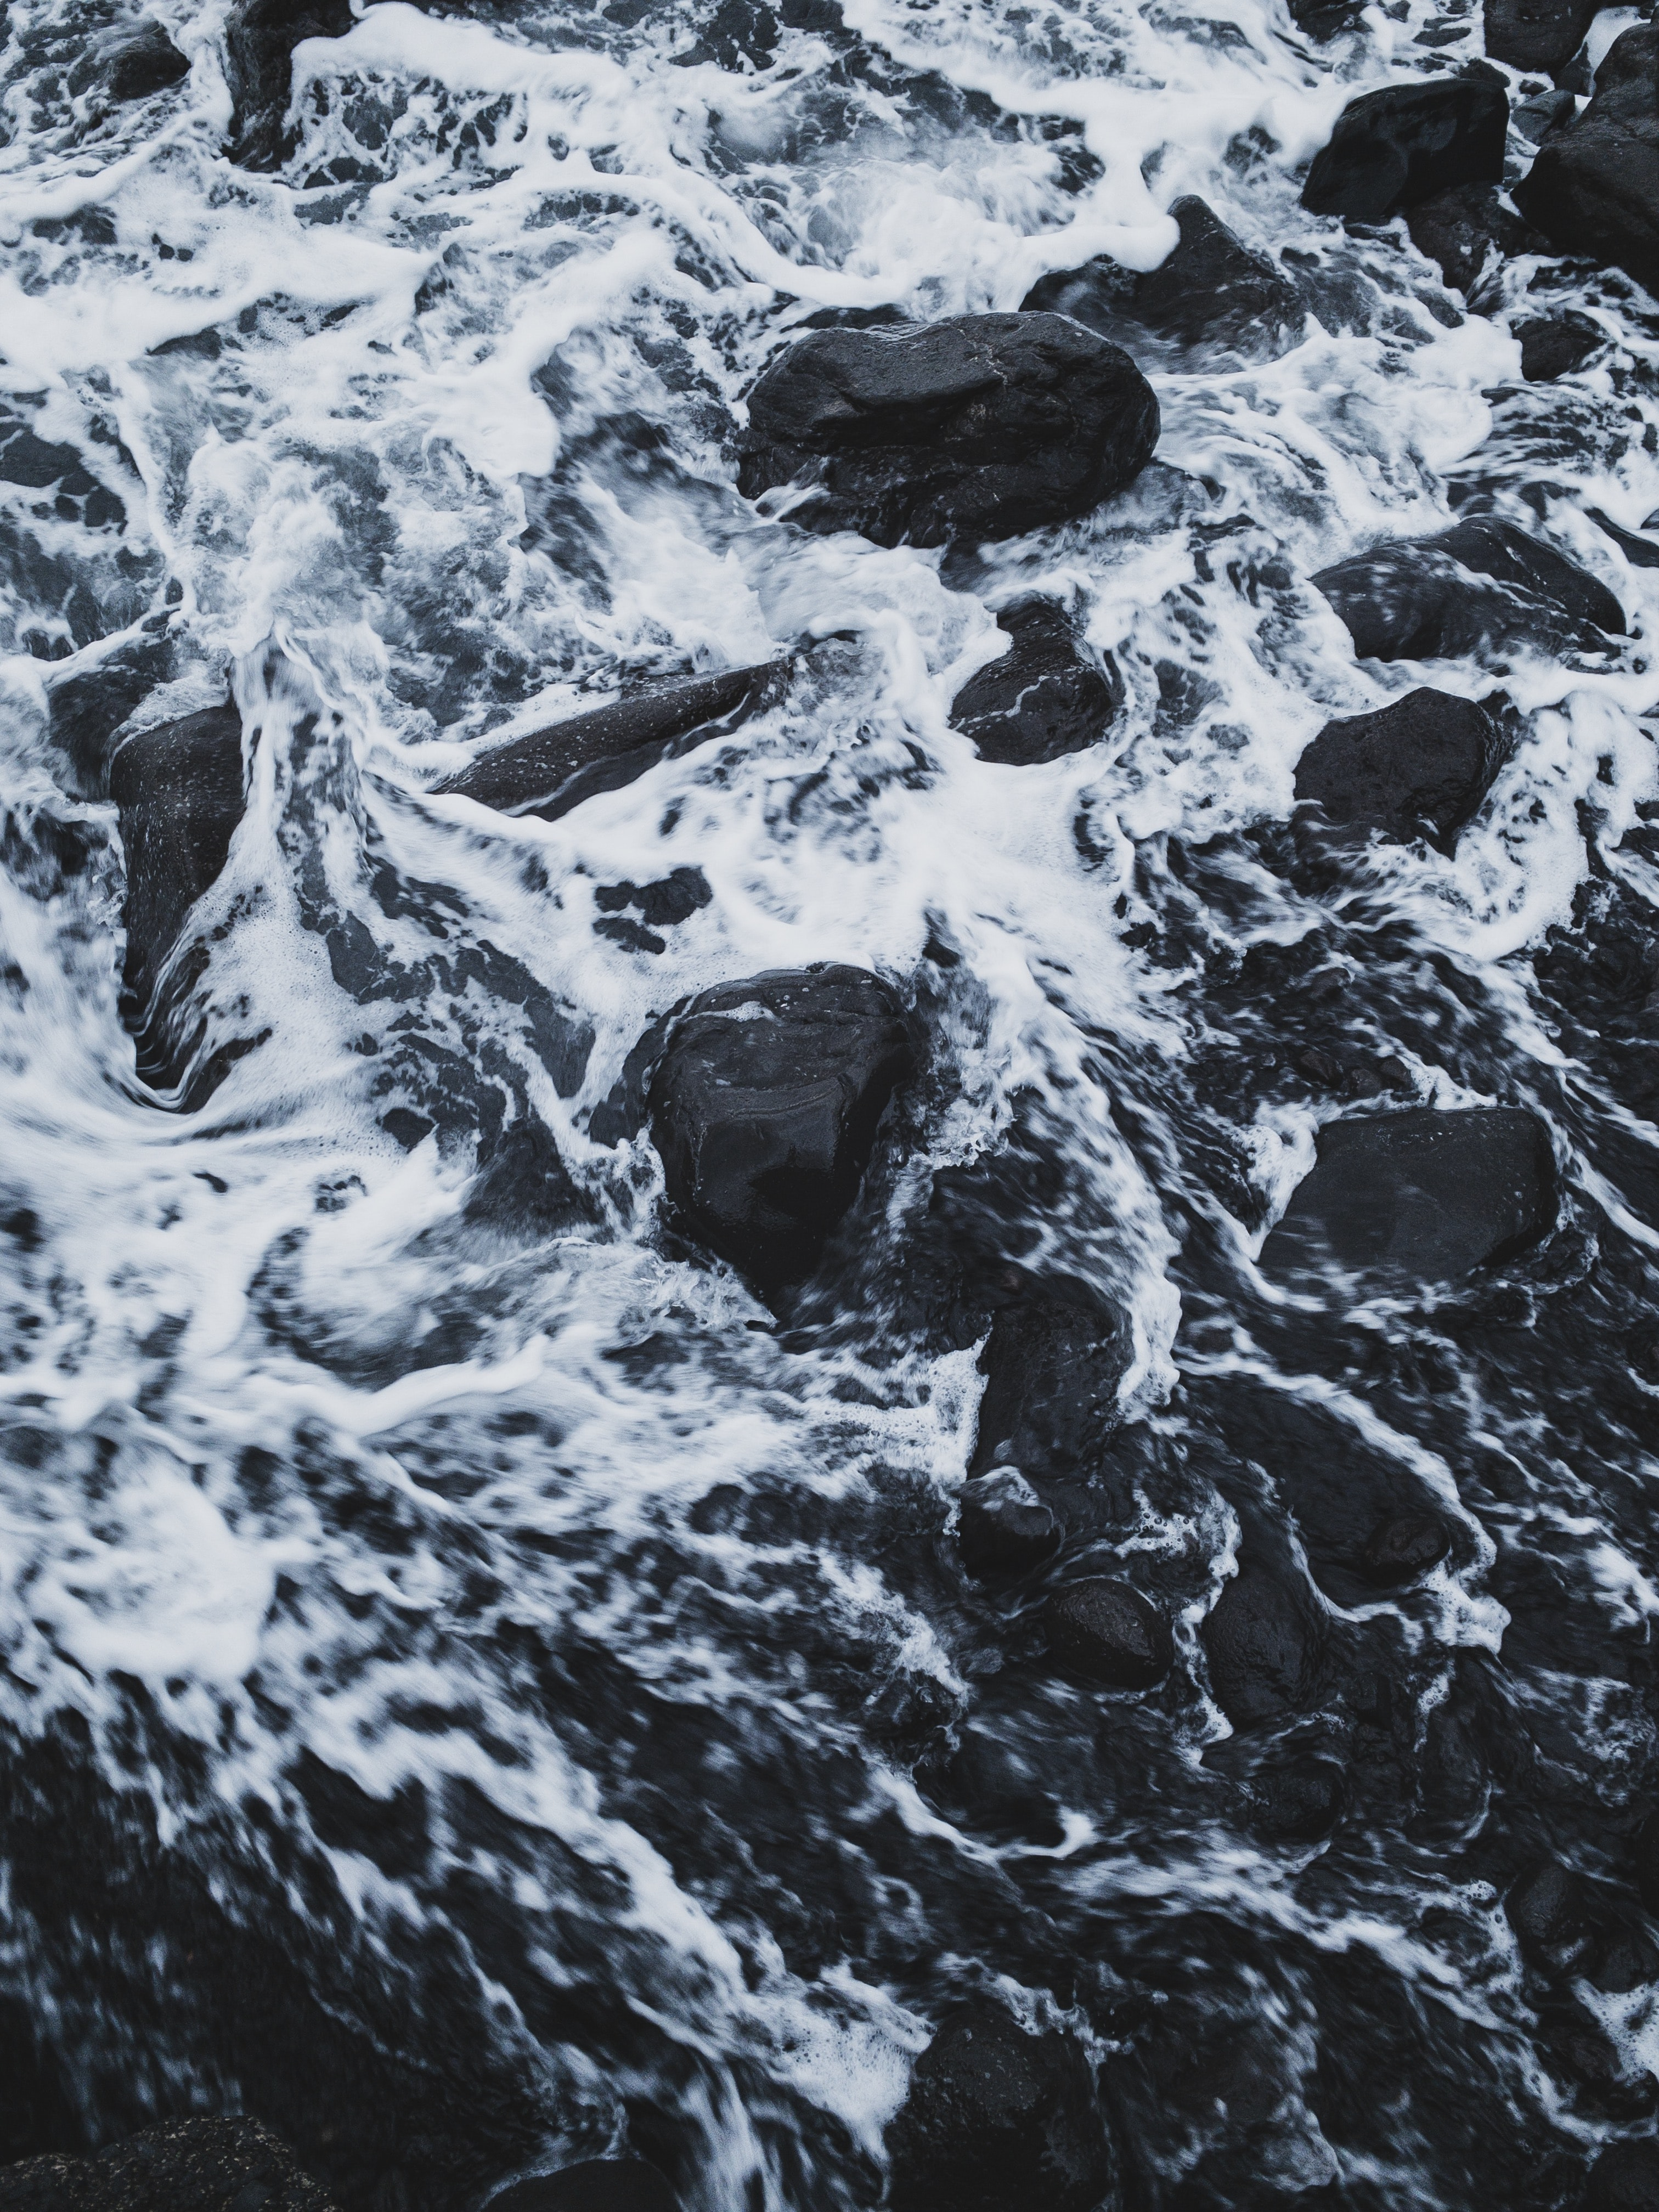 flowing body of water passing through rocks